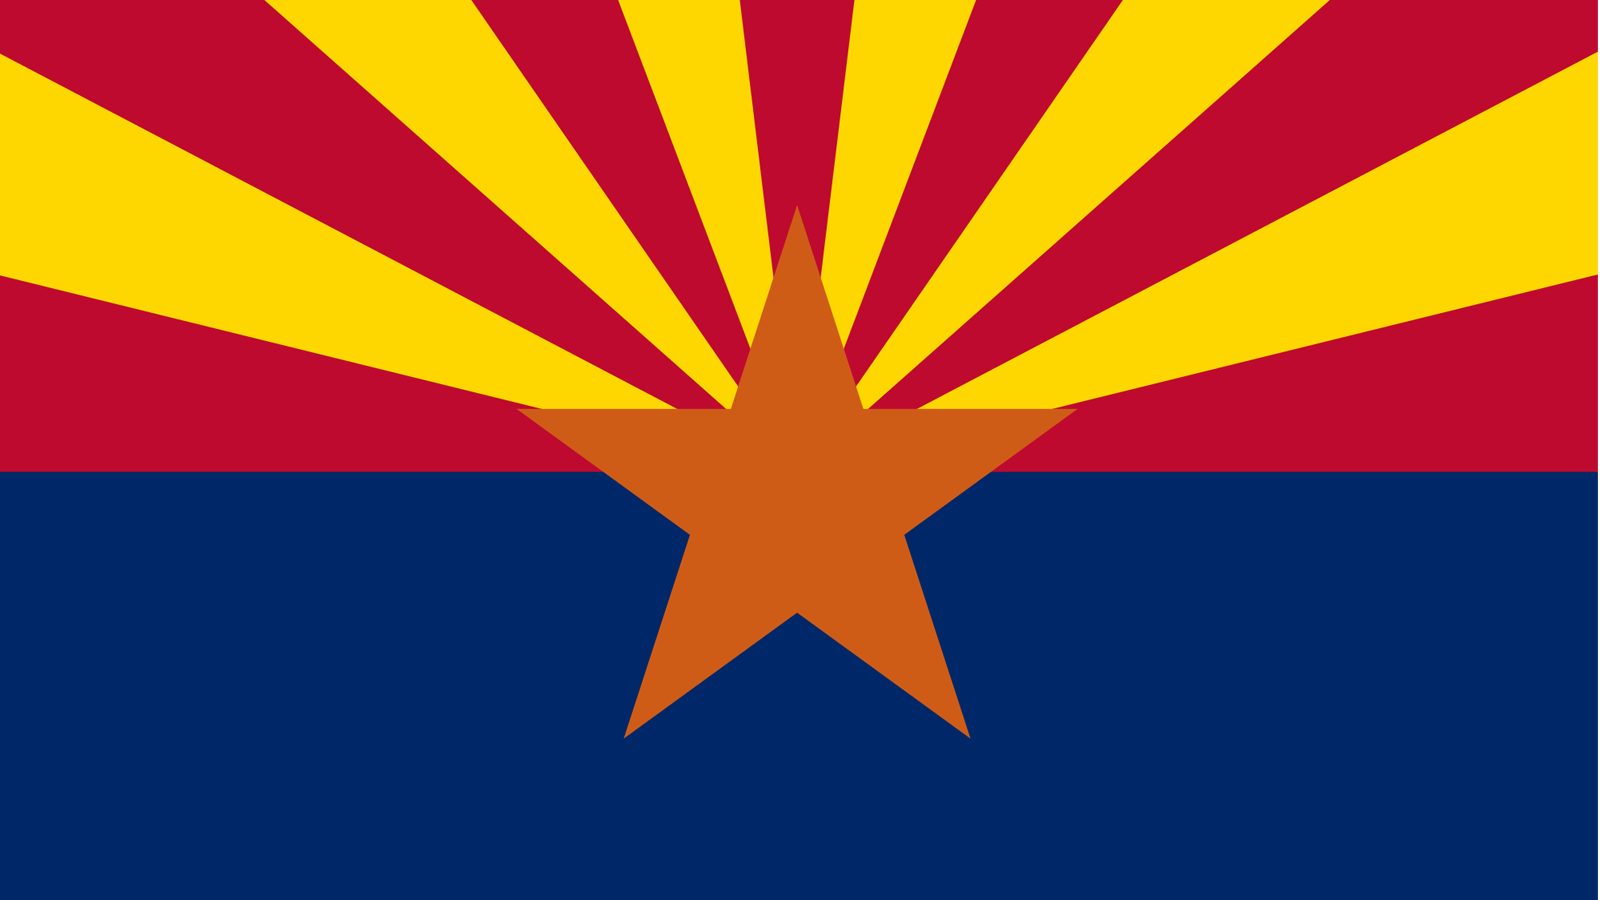 Victory! Arizona State Legislature Repeals Ban on LGBTQ Inclusive Education